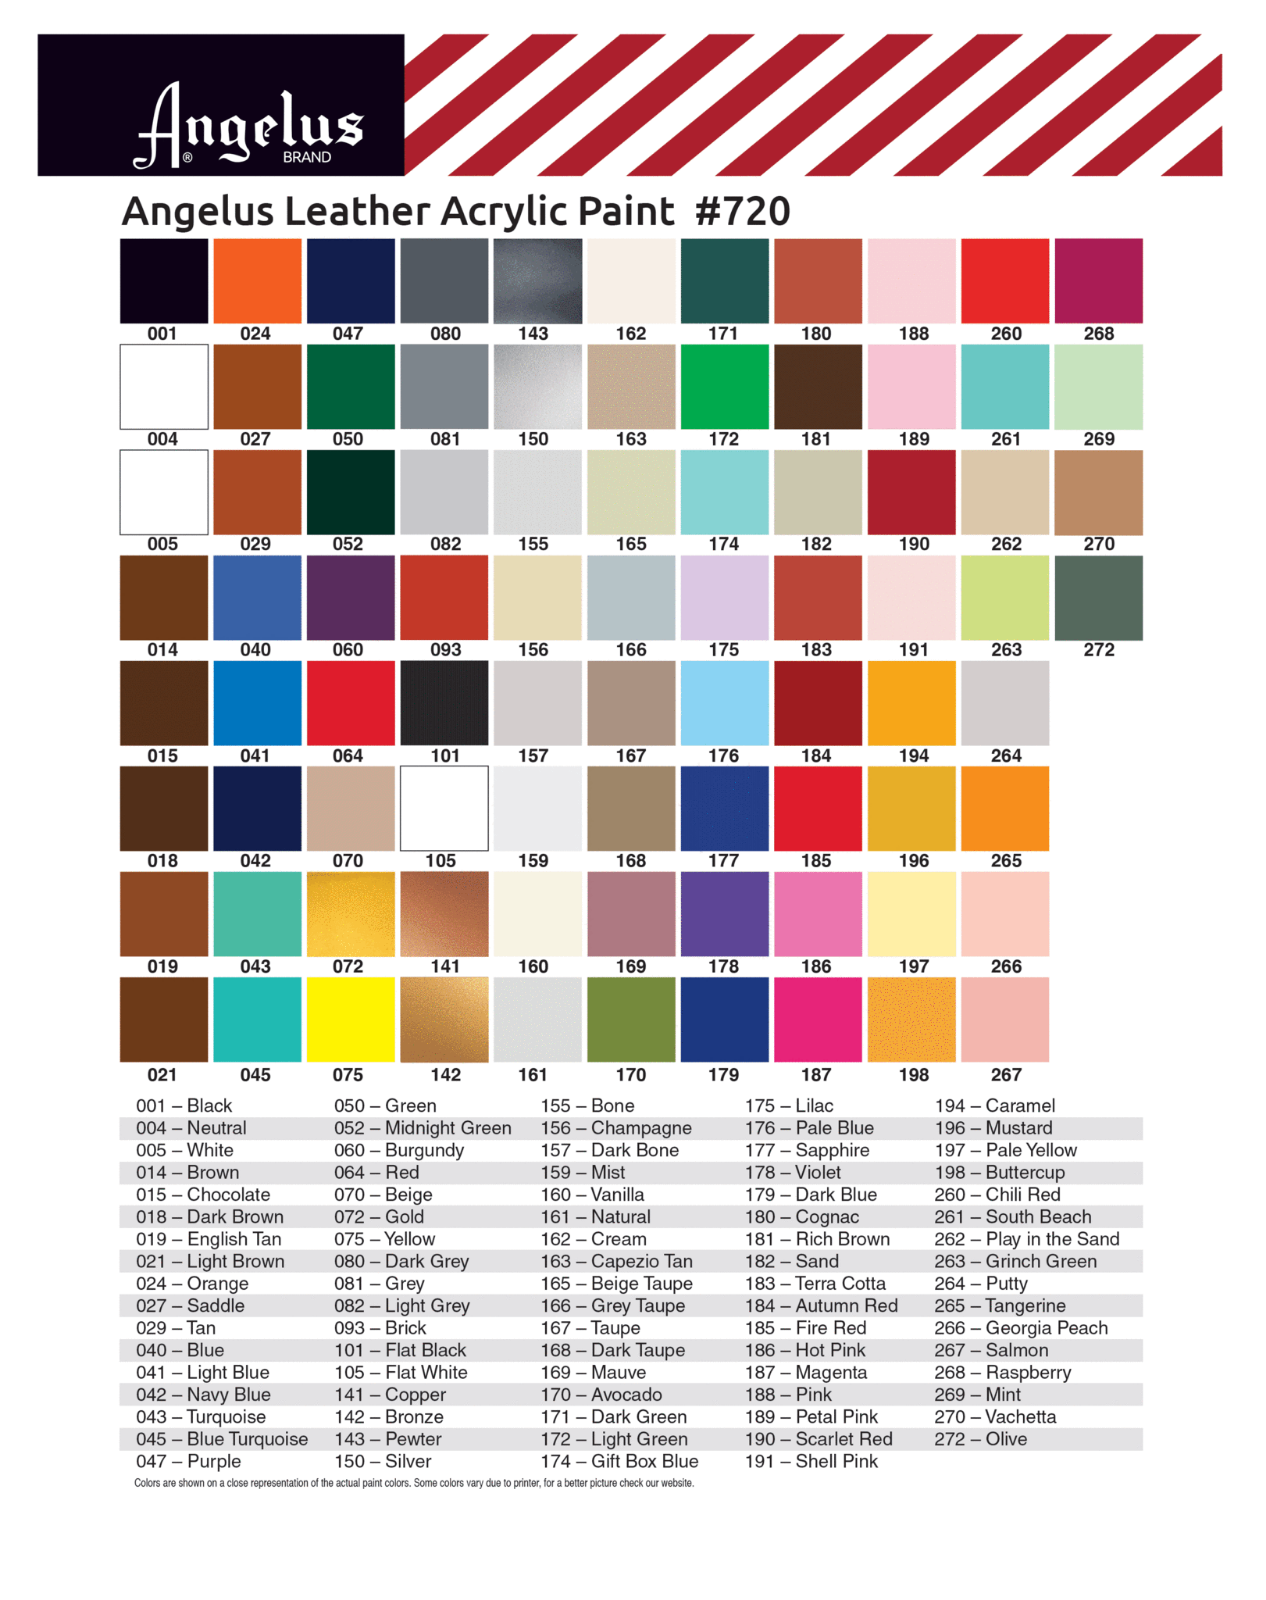 Angelus Brand Acrylic Leather & Vinyl Waterproof Paint 83 Colors! 7